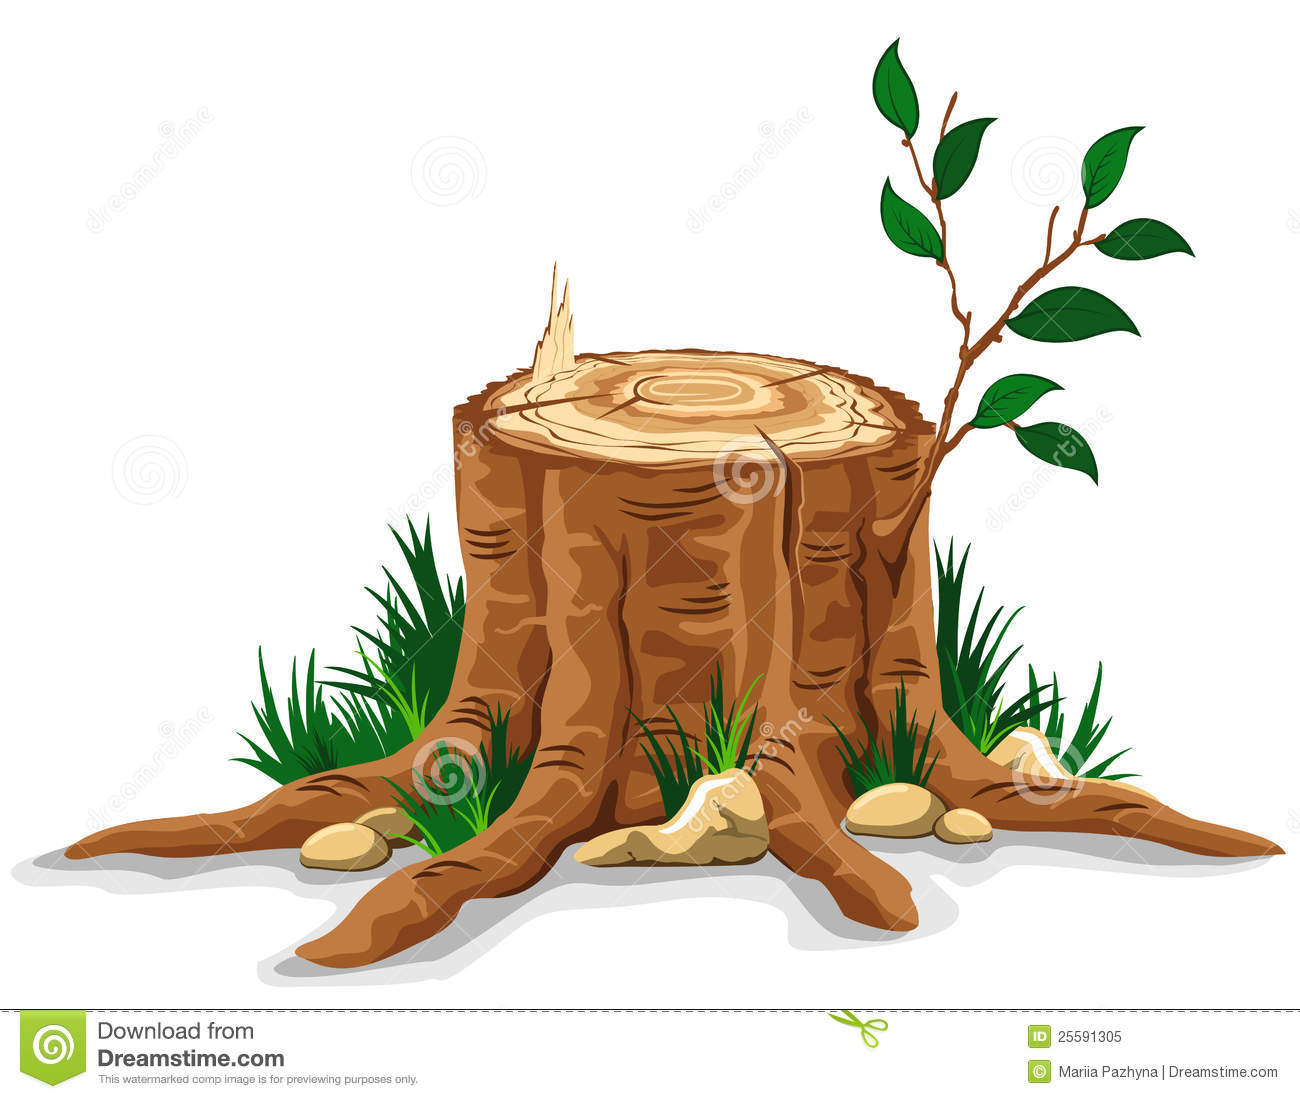 Stump clipart #18, Download drawings